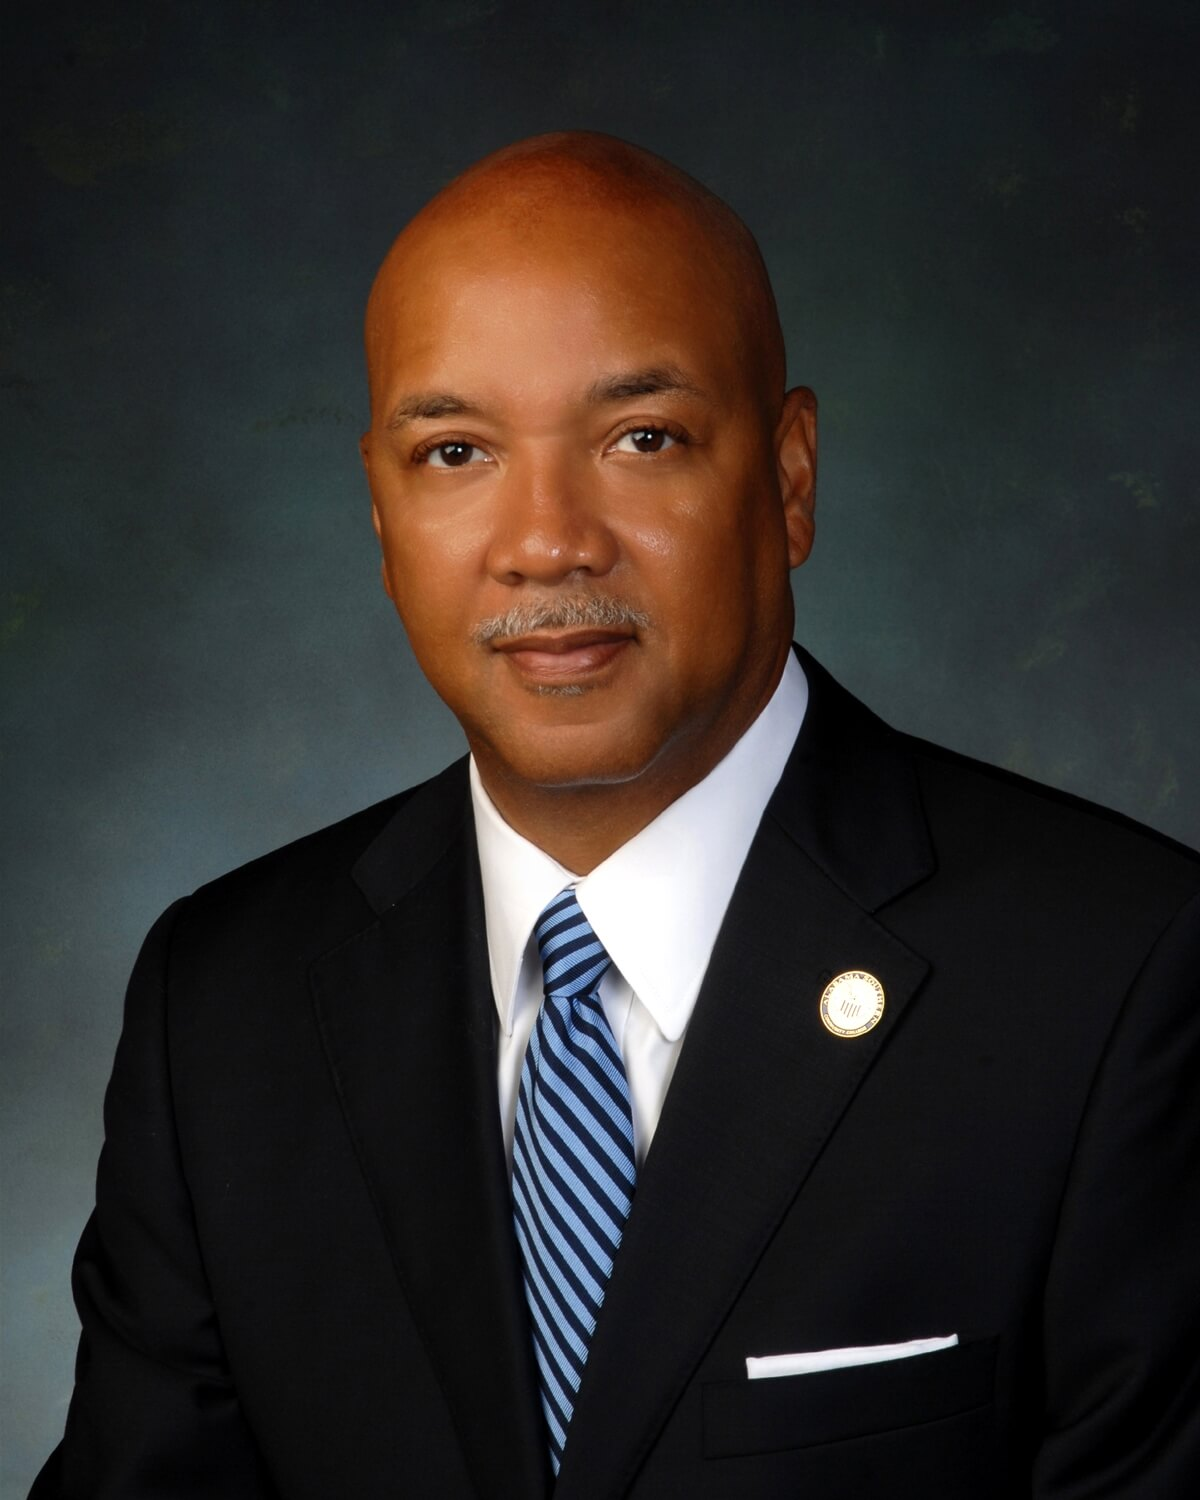 Bishop State president replaced by Reginald Sykes